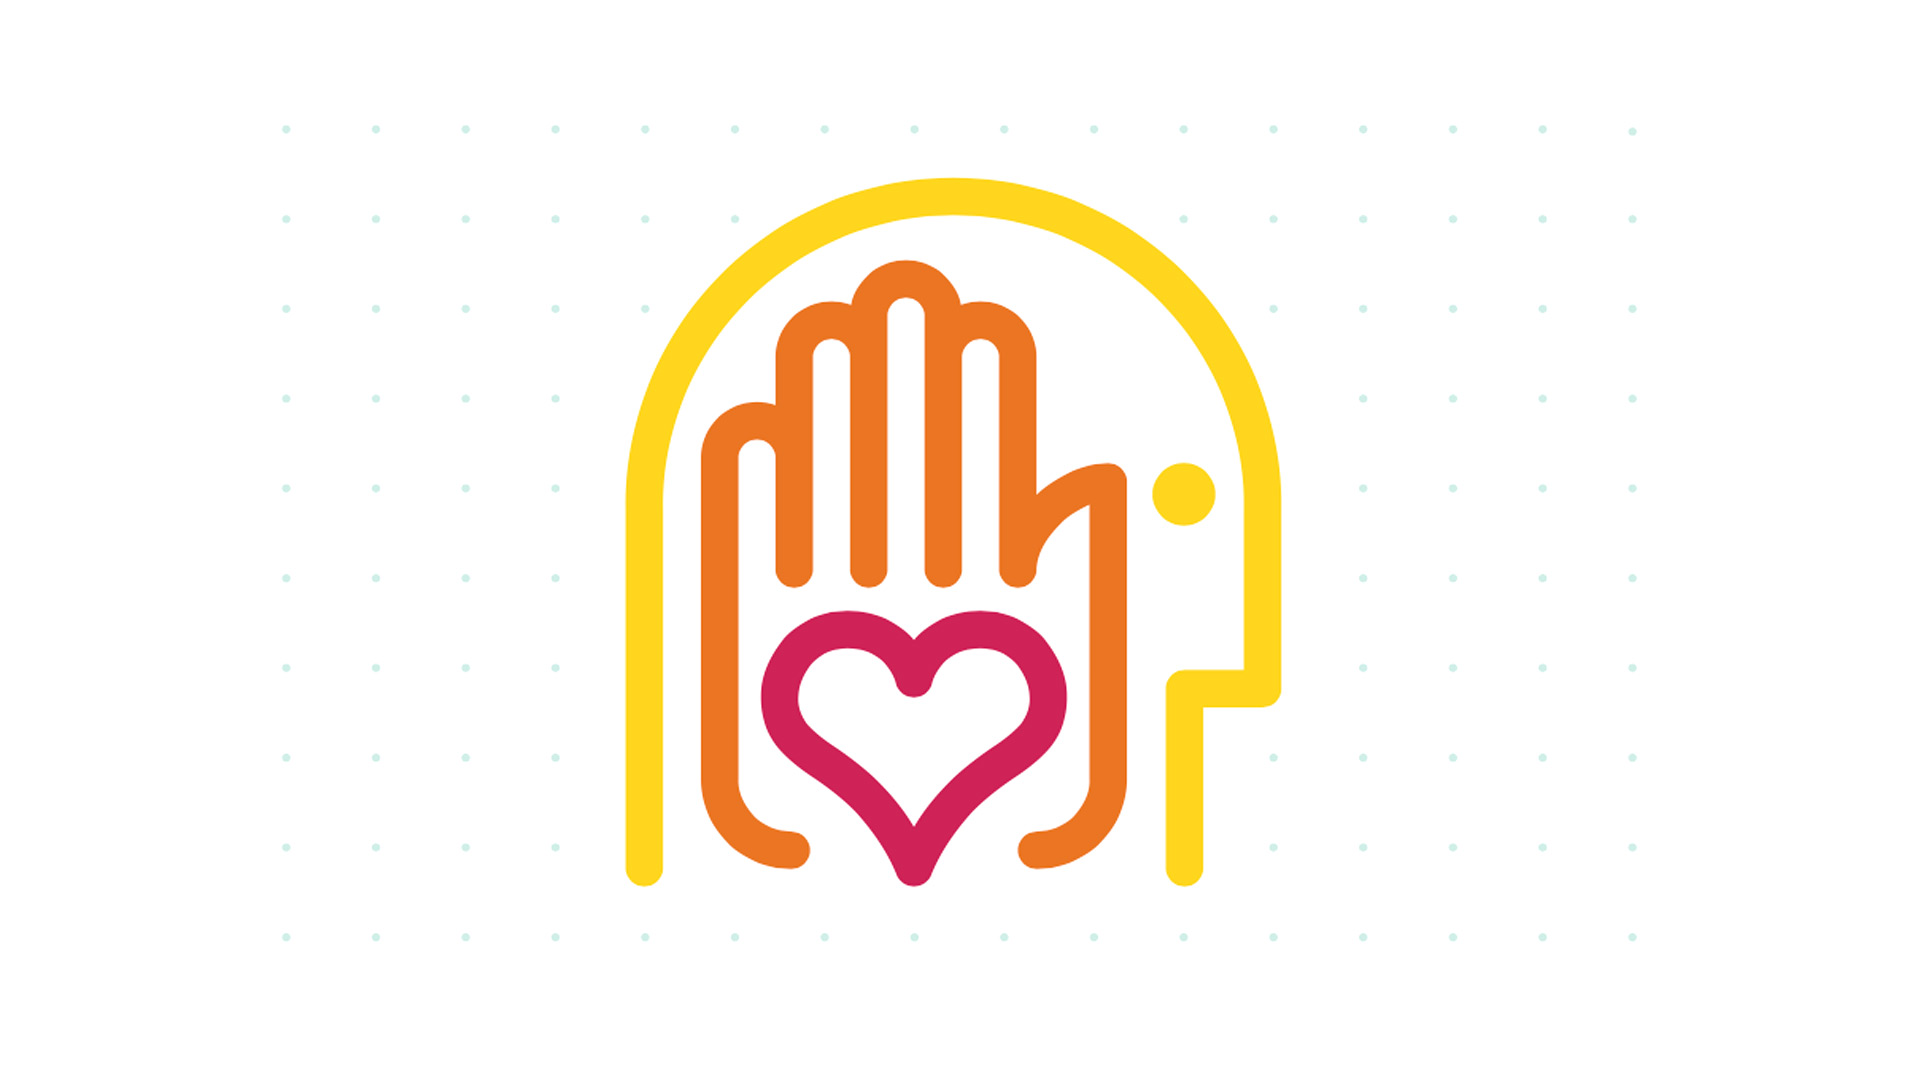 SCAD head, hand, heart logo